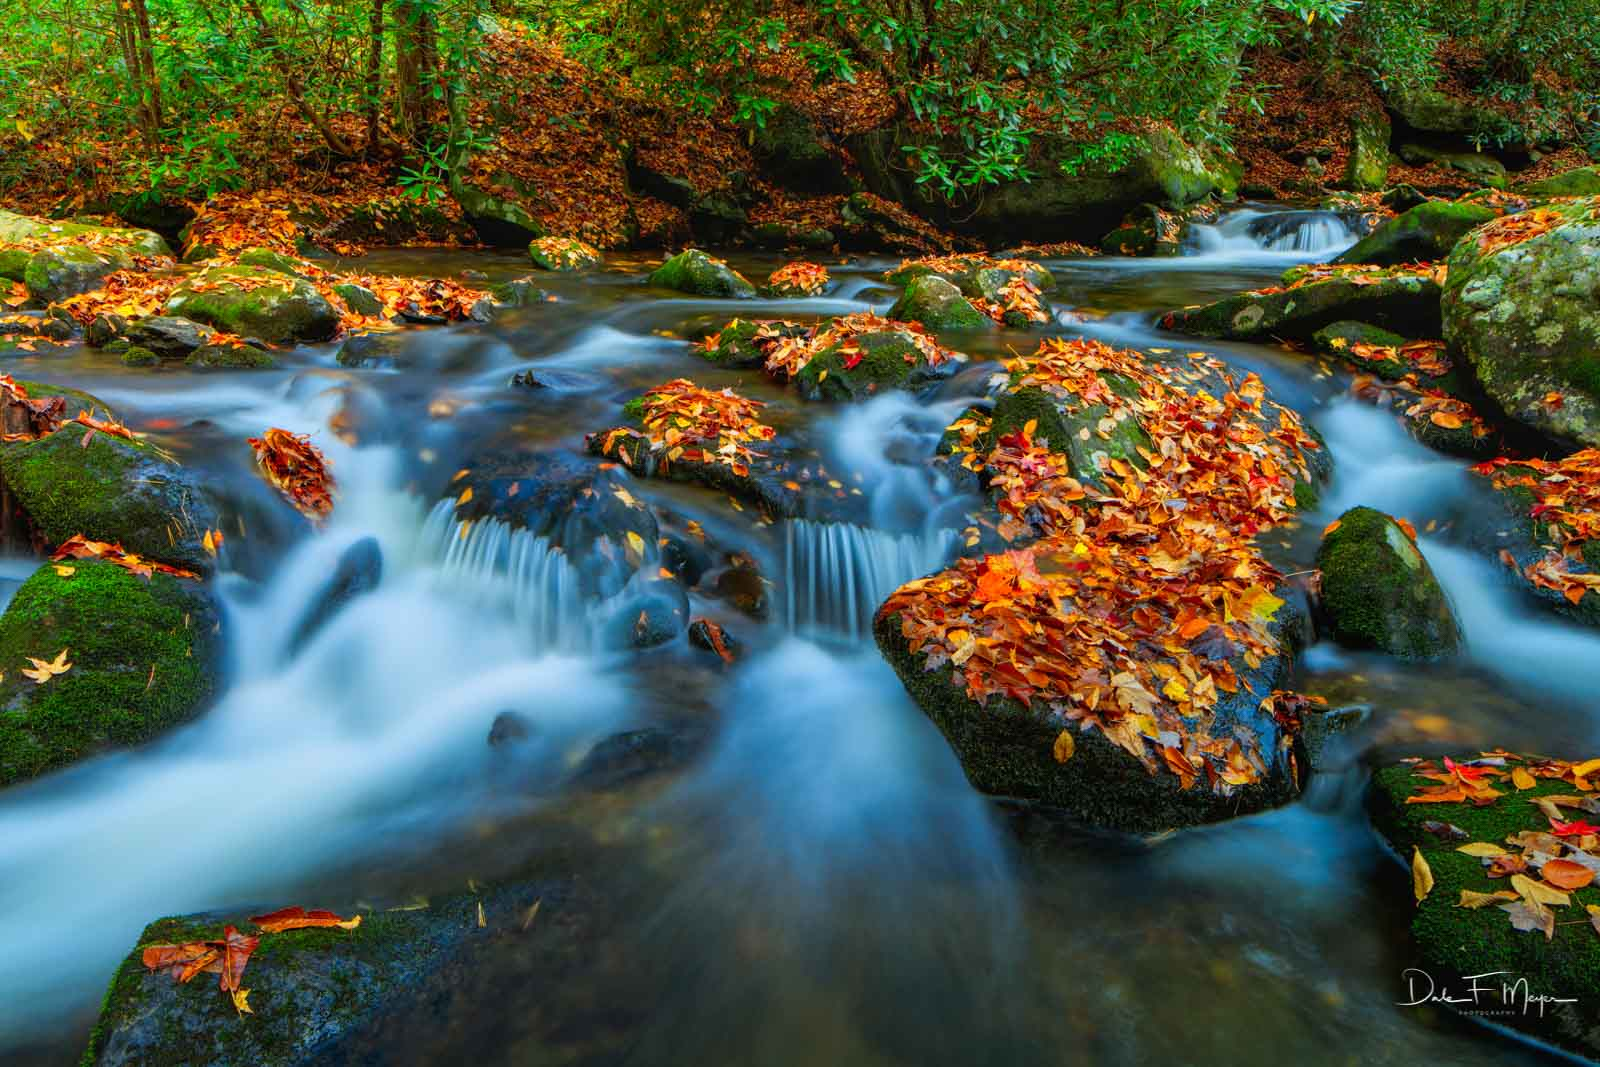 Leaf Fall and a beautiful flow of crystal clear water through leaf coveredstones and boulders on the Middle Prong of the...